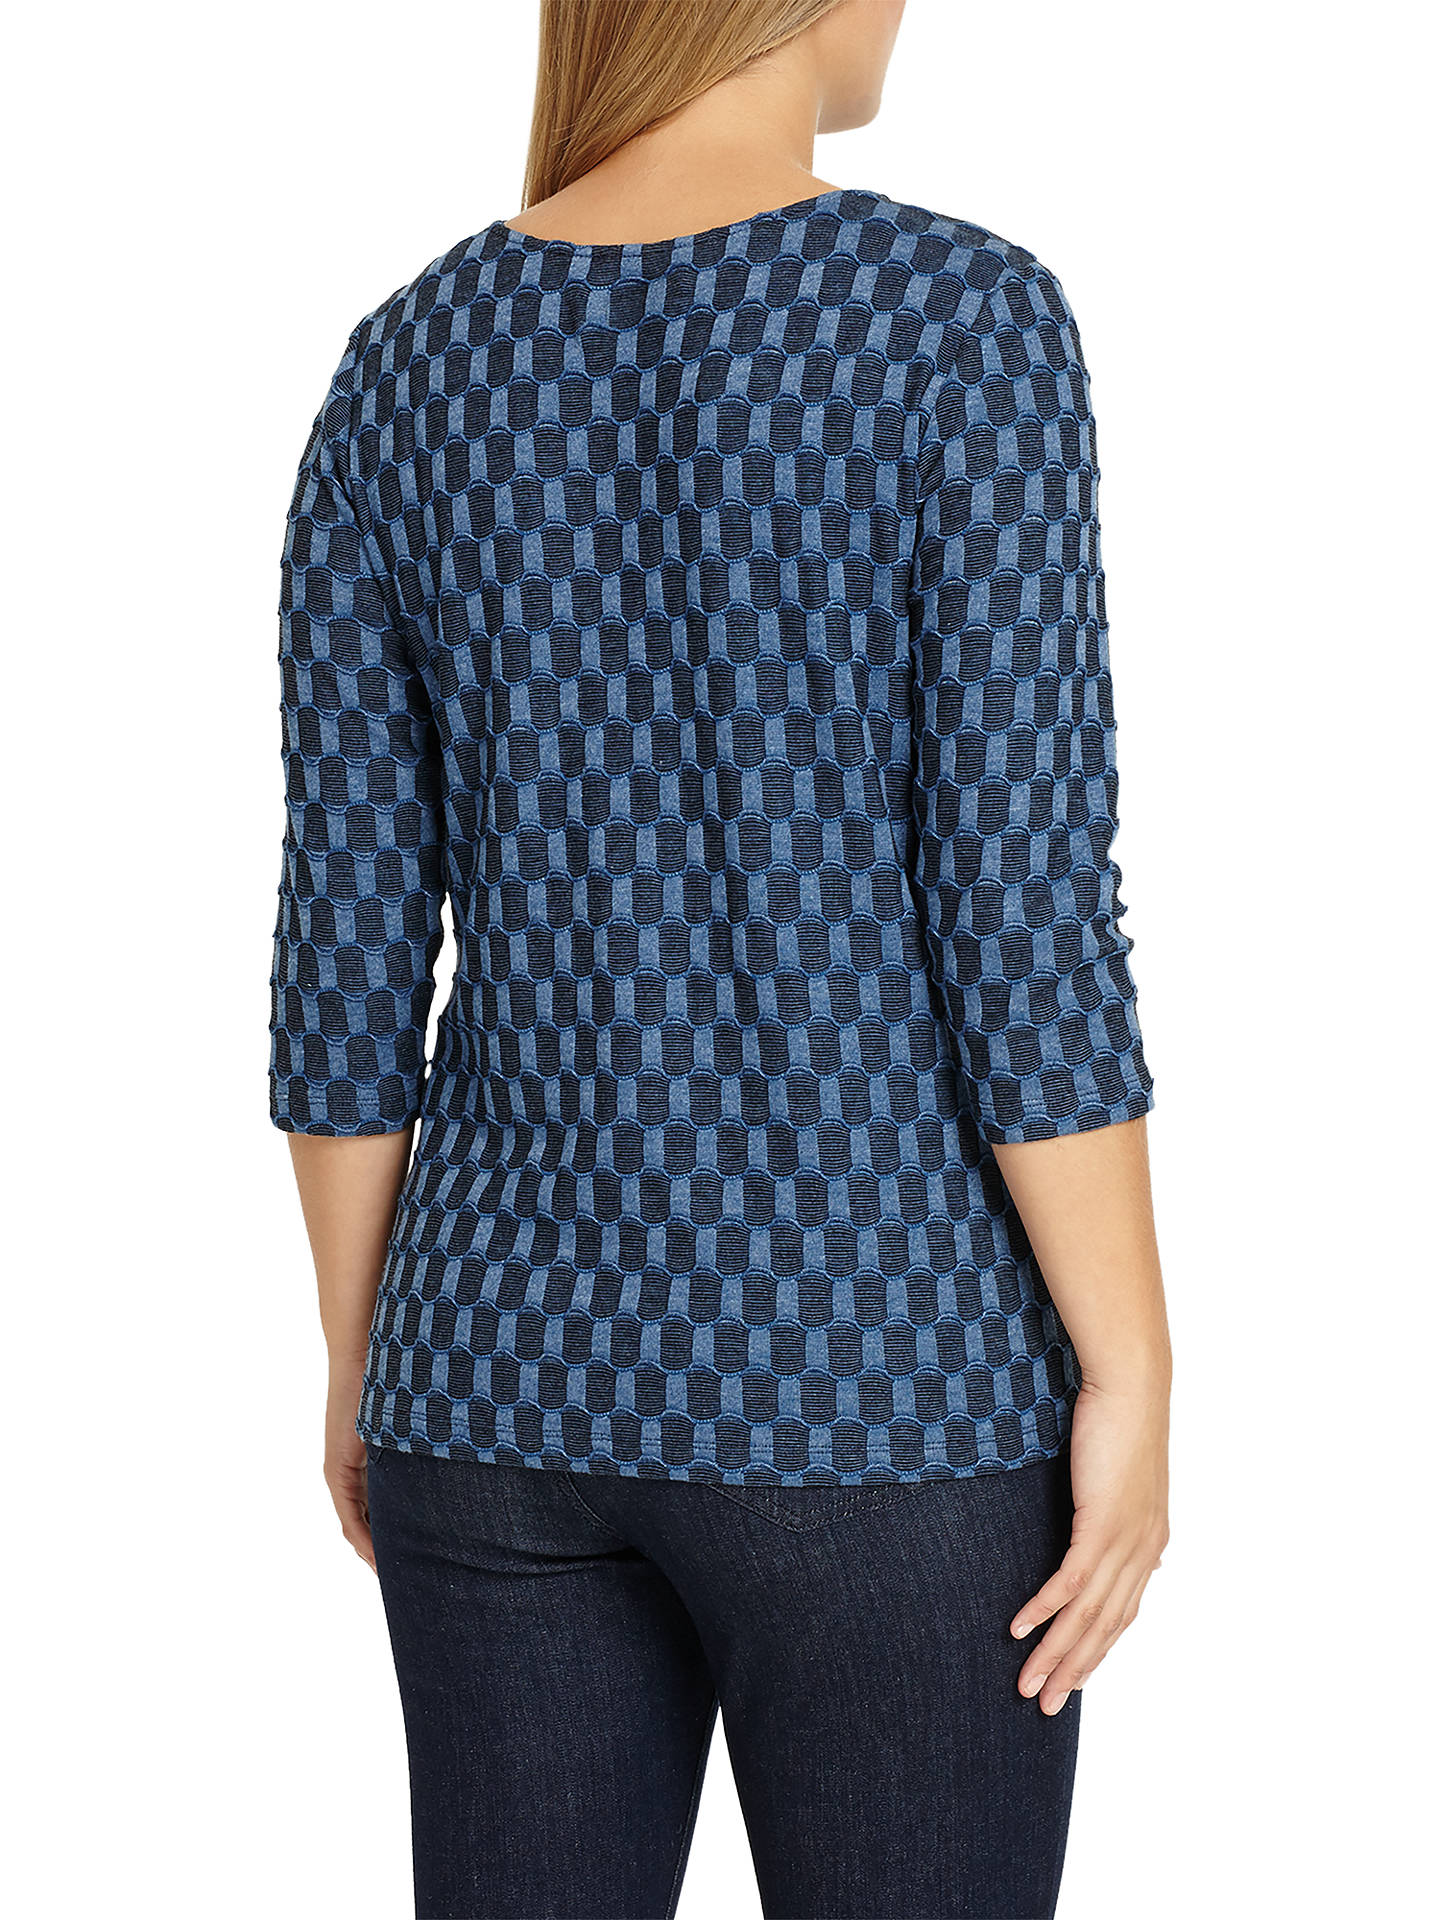 BuyStudio 8 Caroline Top, Blue, 16 Online at johnlewis.com